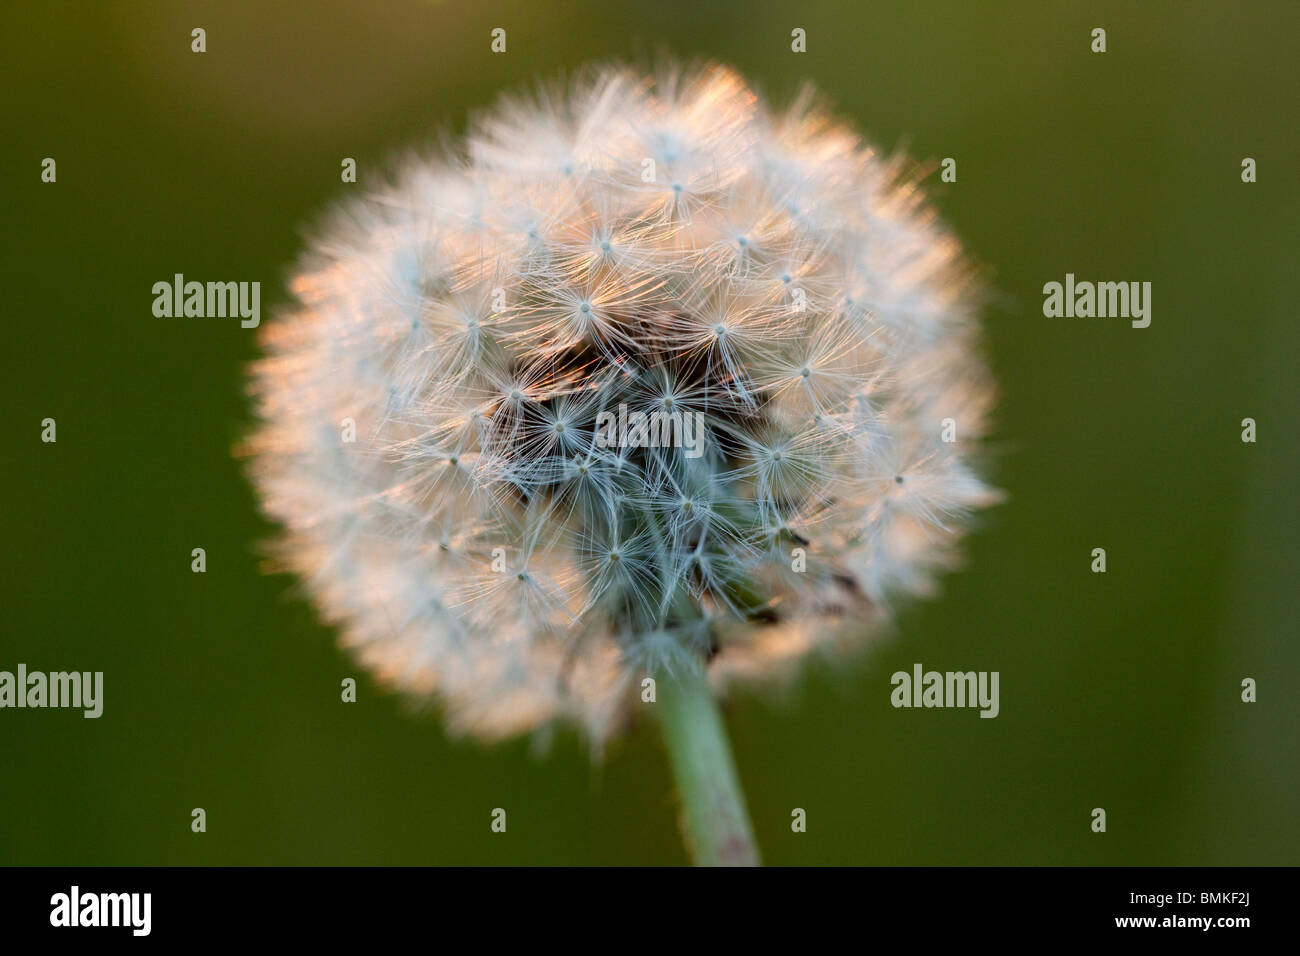 Close up of a dandelion seedhead Stock Photo